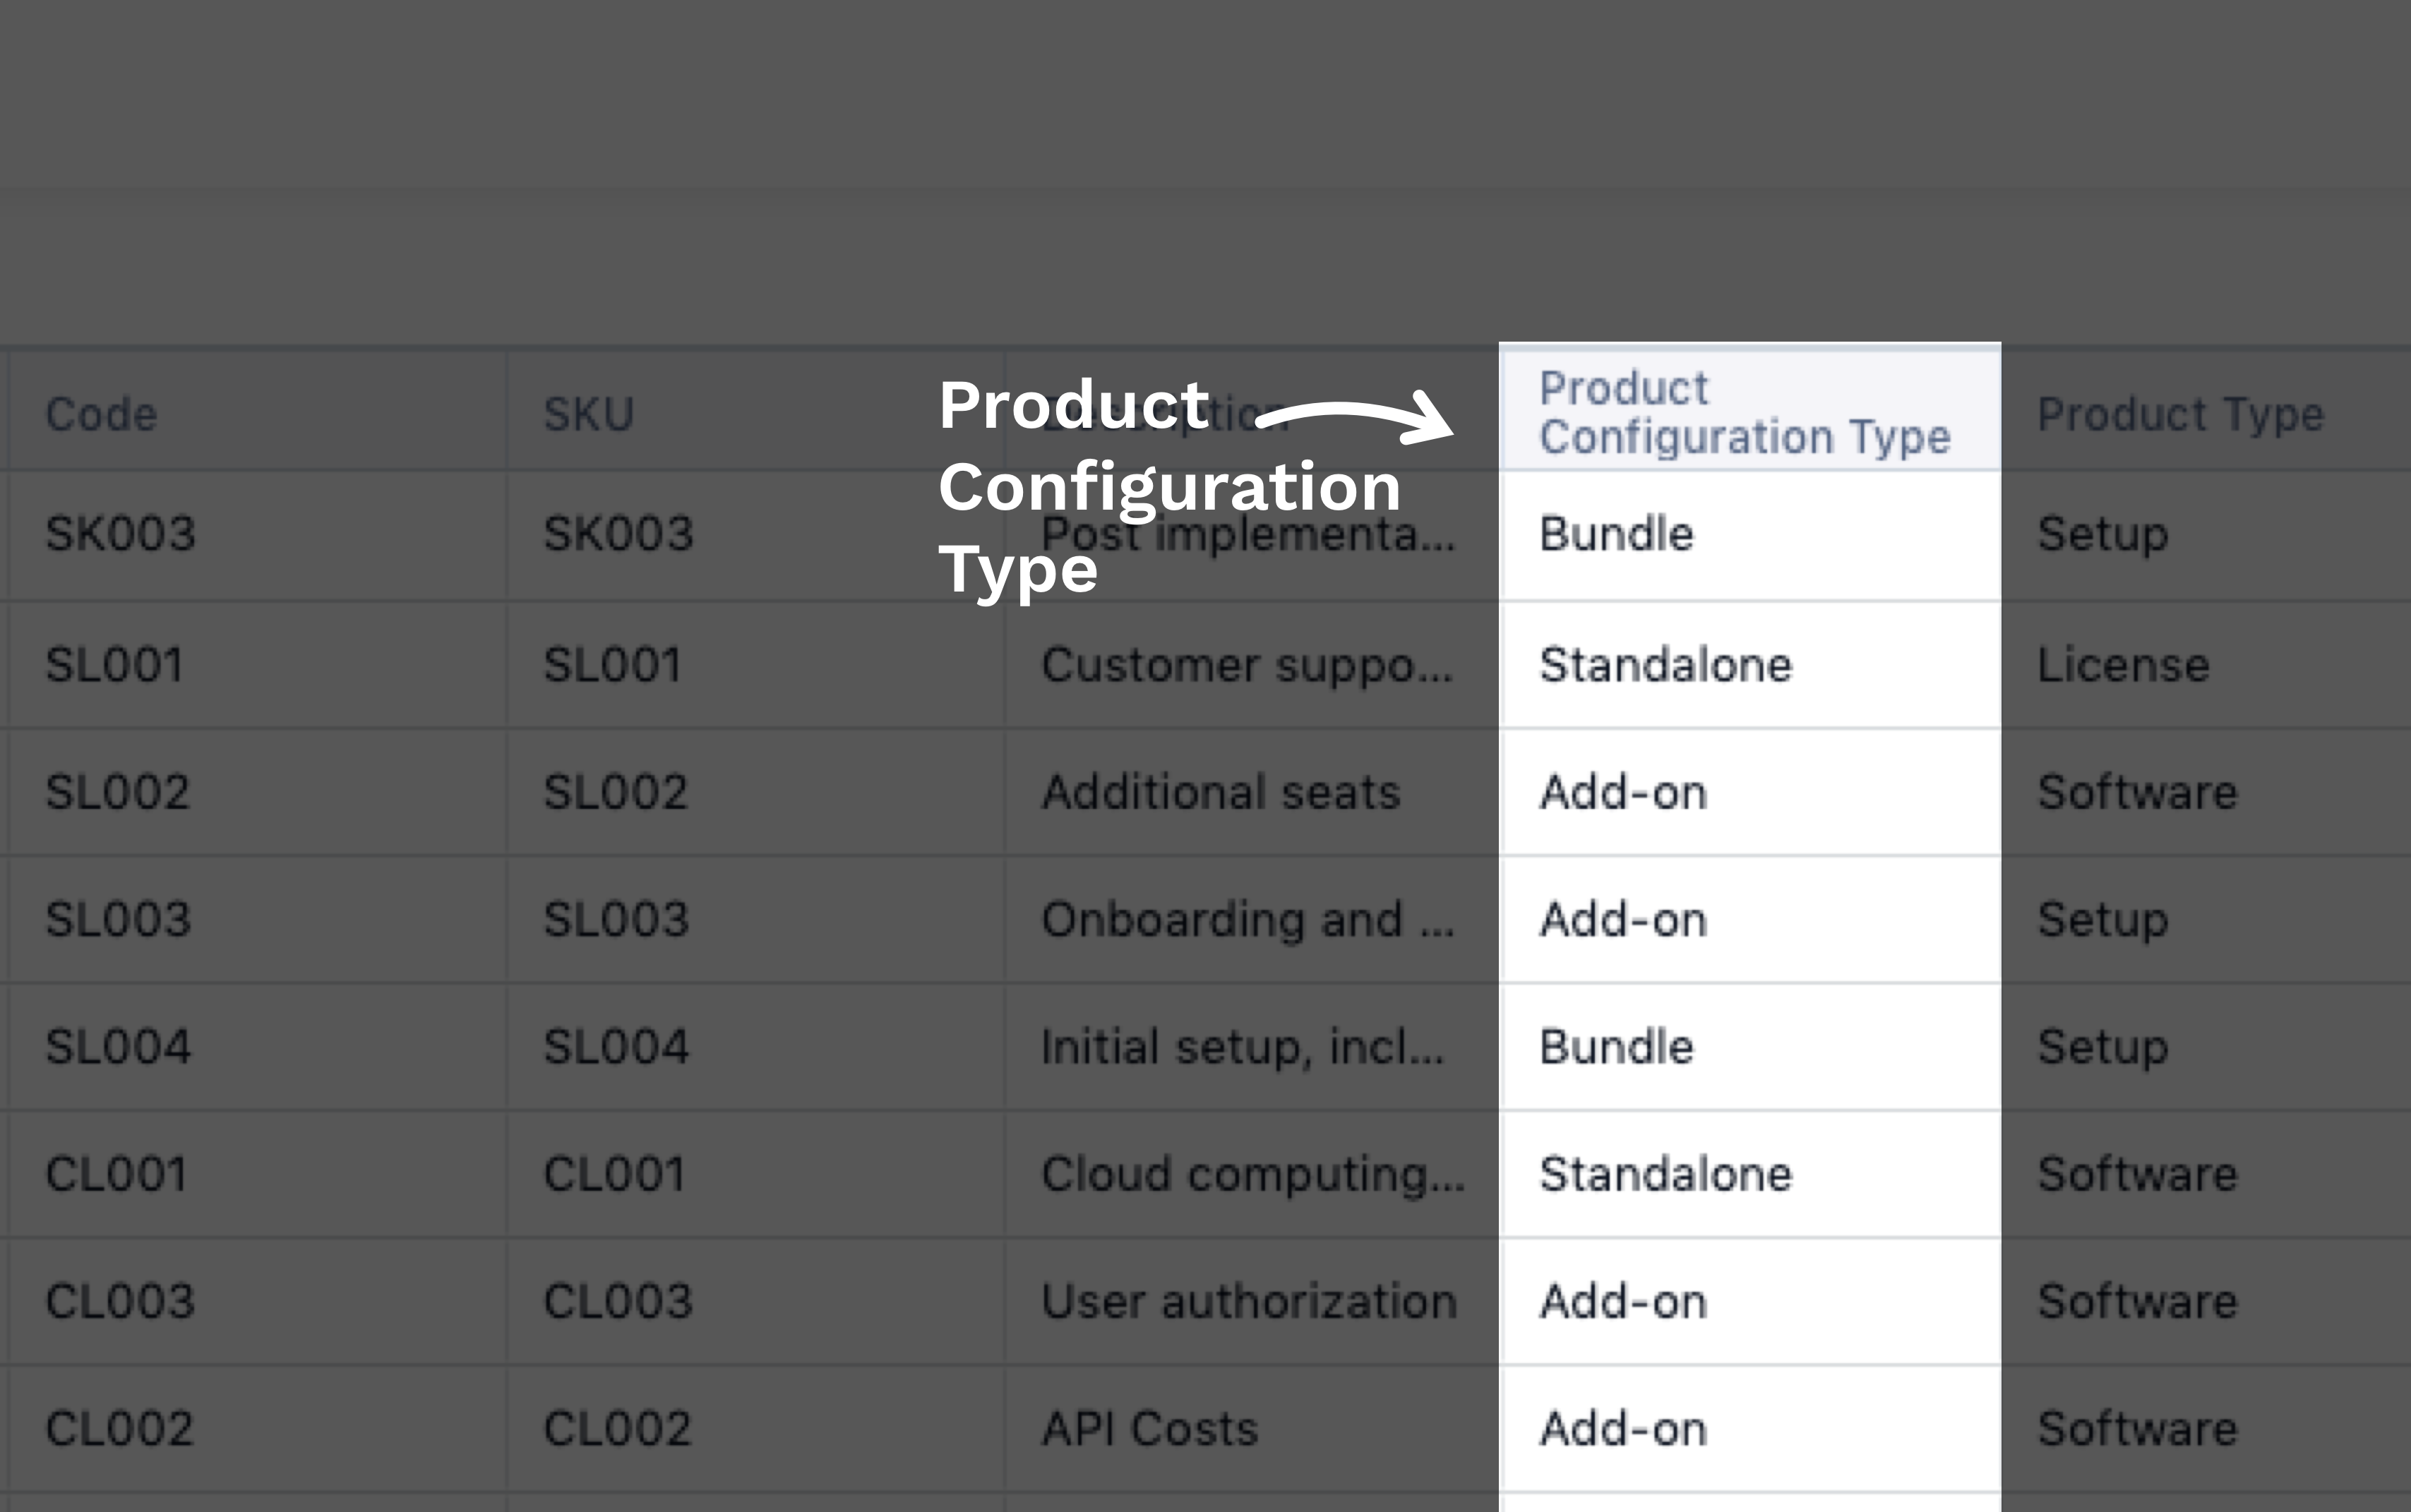 Revv product configuration type